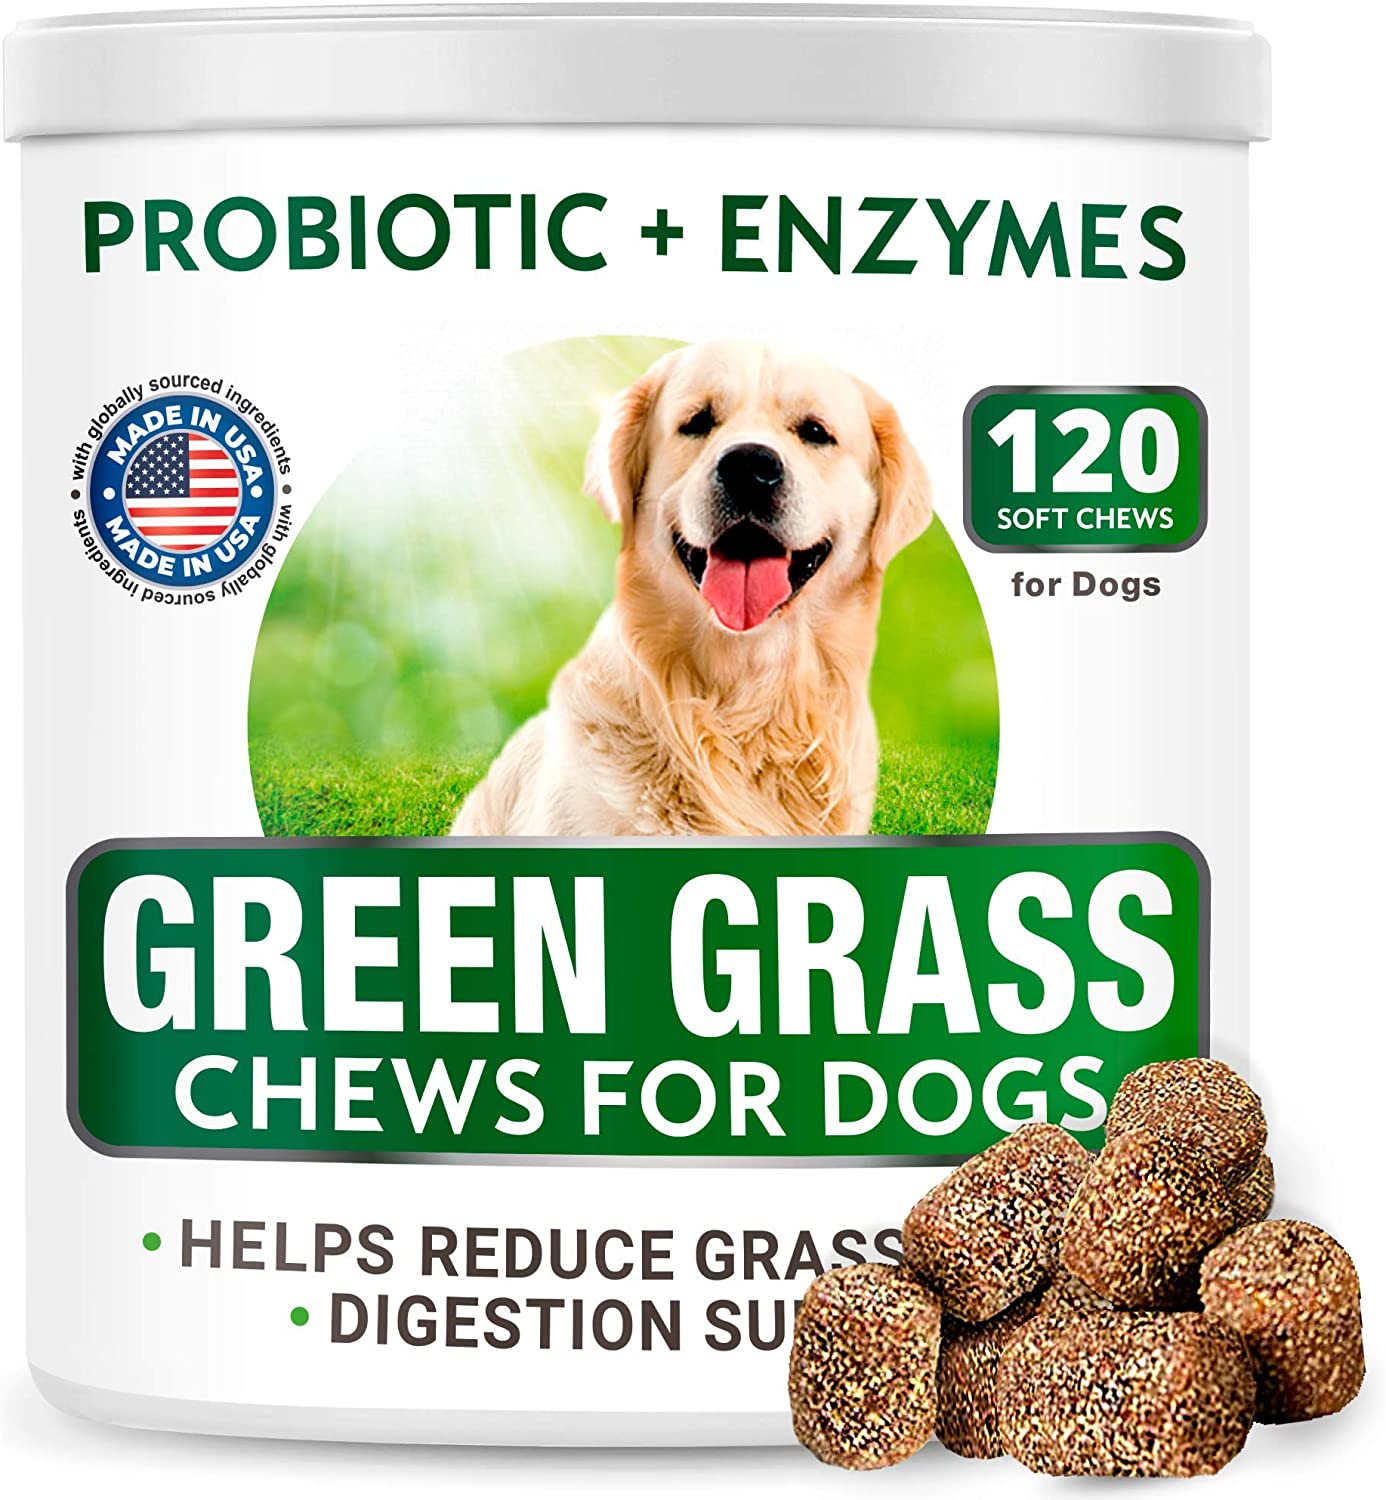 All-Natural Grass Treatment for Dog Urine - Grass Saver for Dogs - Pee Lawn Repair Chews w Probiotics - Dog Urine Neutralizer Solution for Grass Burn Spots - Made in USA - 120 Treats